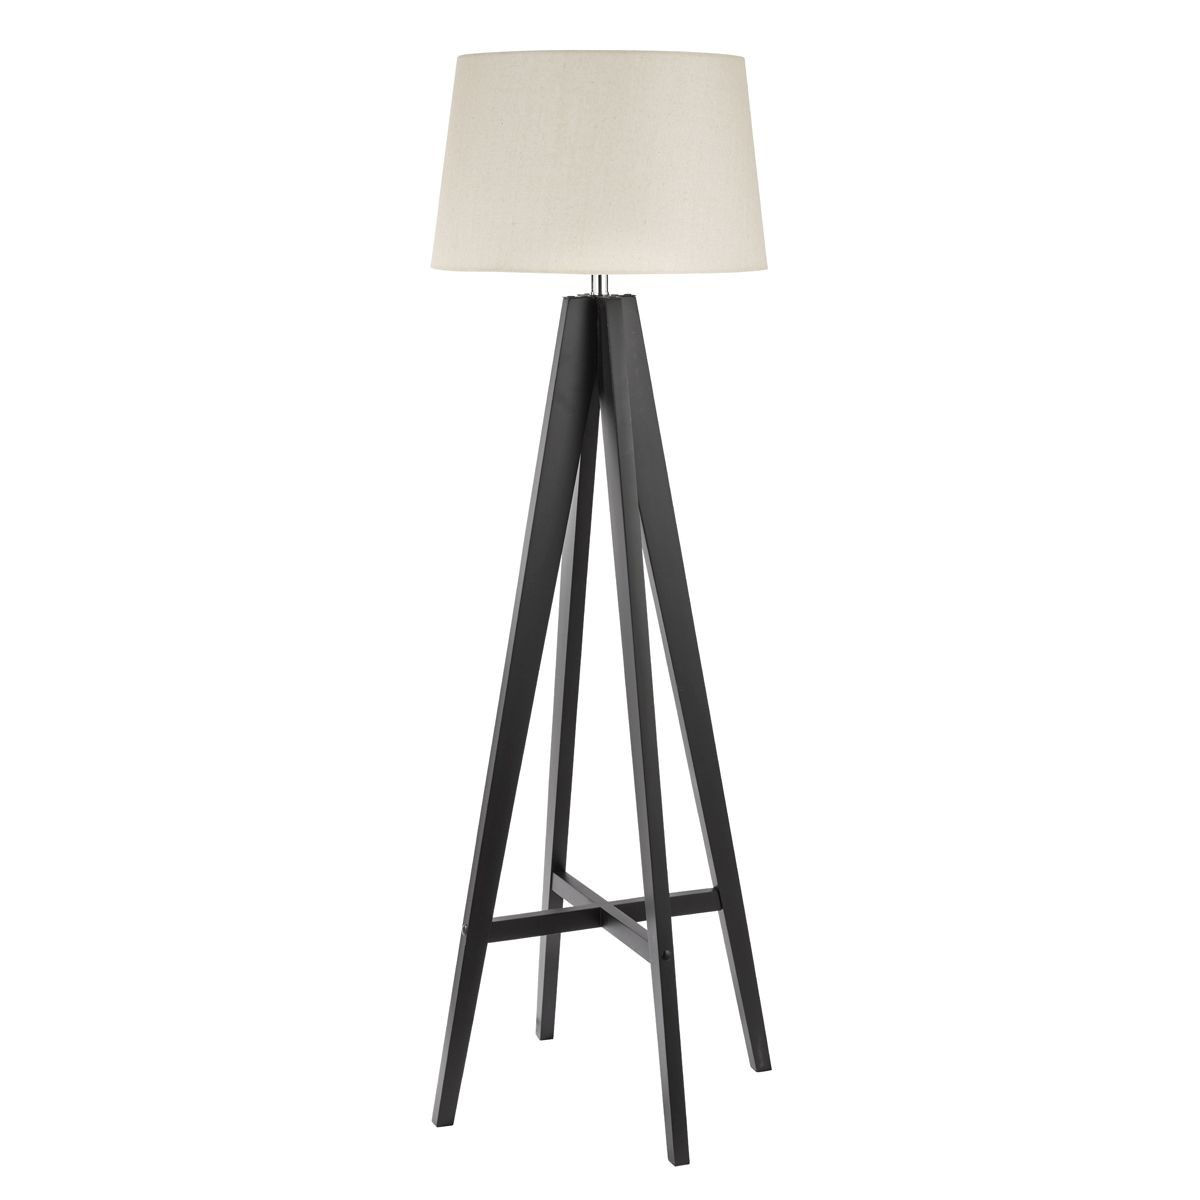 Dark wood floor lamp complete with cream shade Wood floor lamp